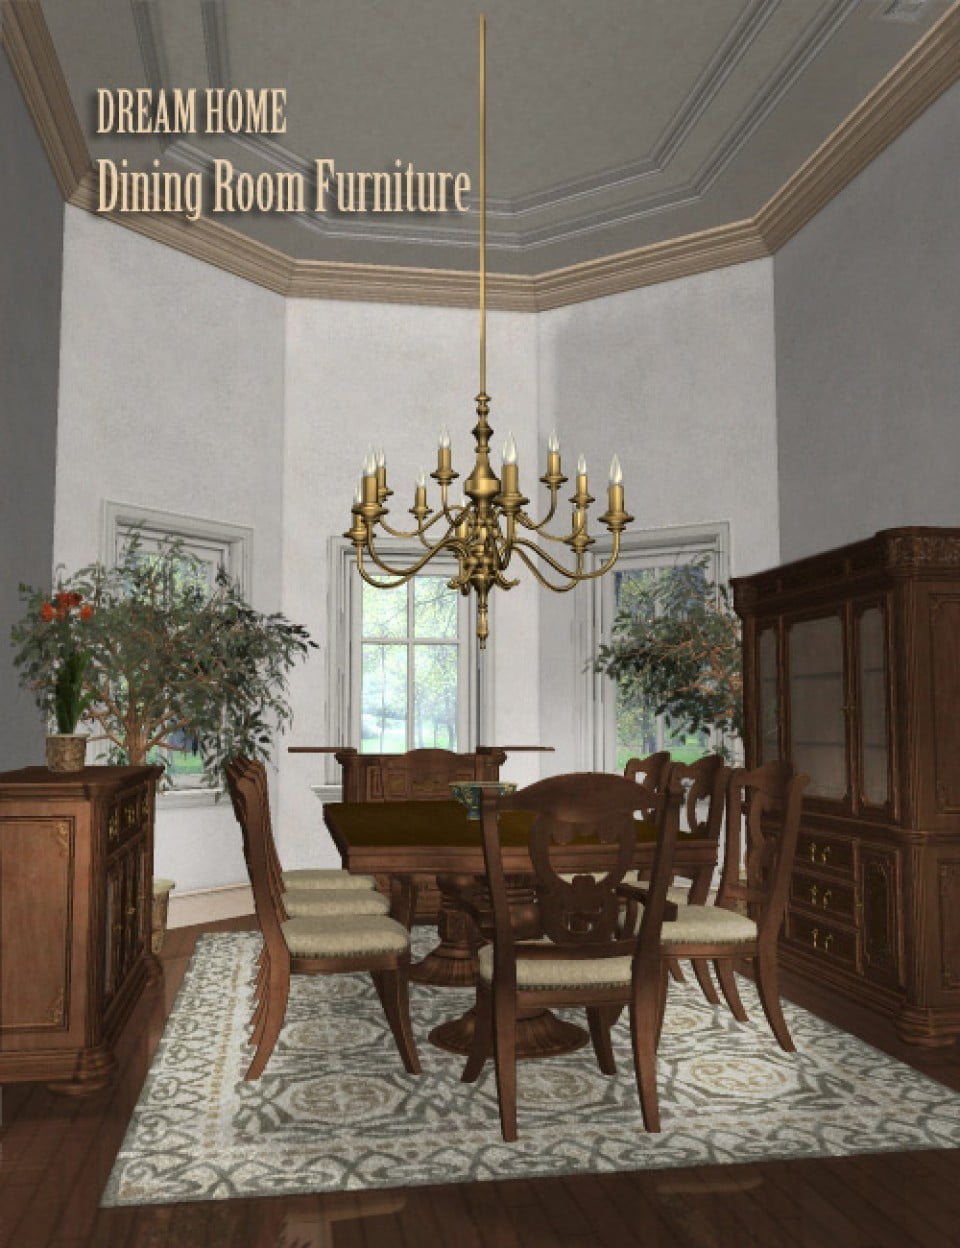 dream-home-dining-room-furniture-london-large